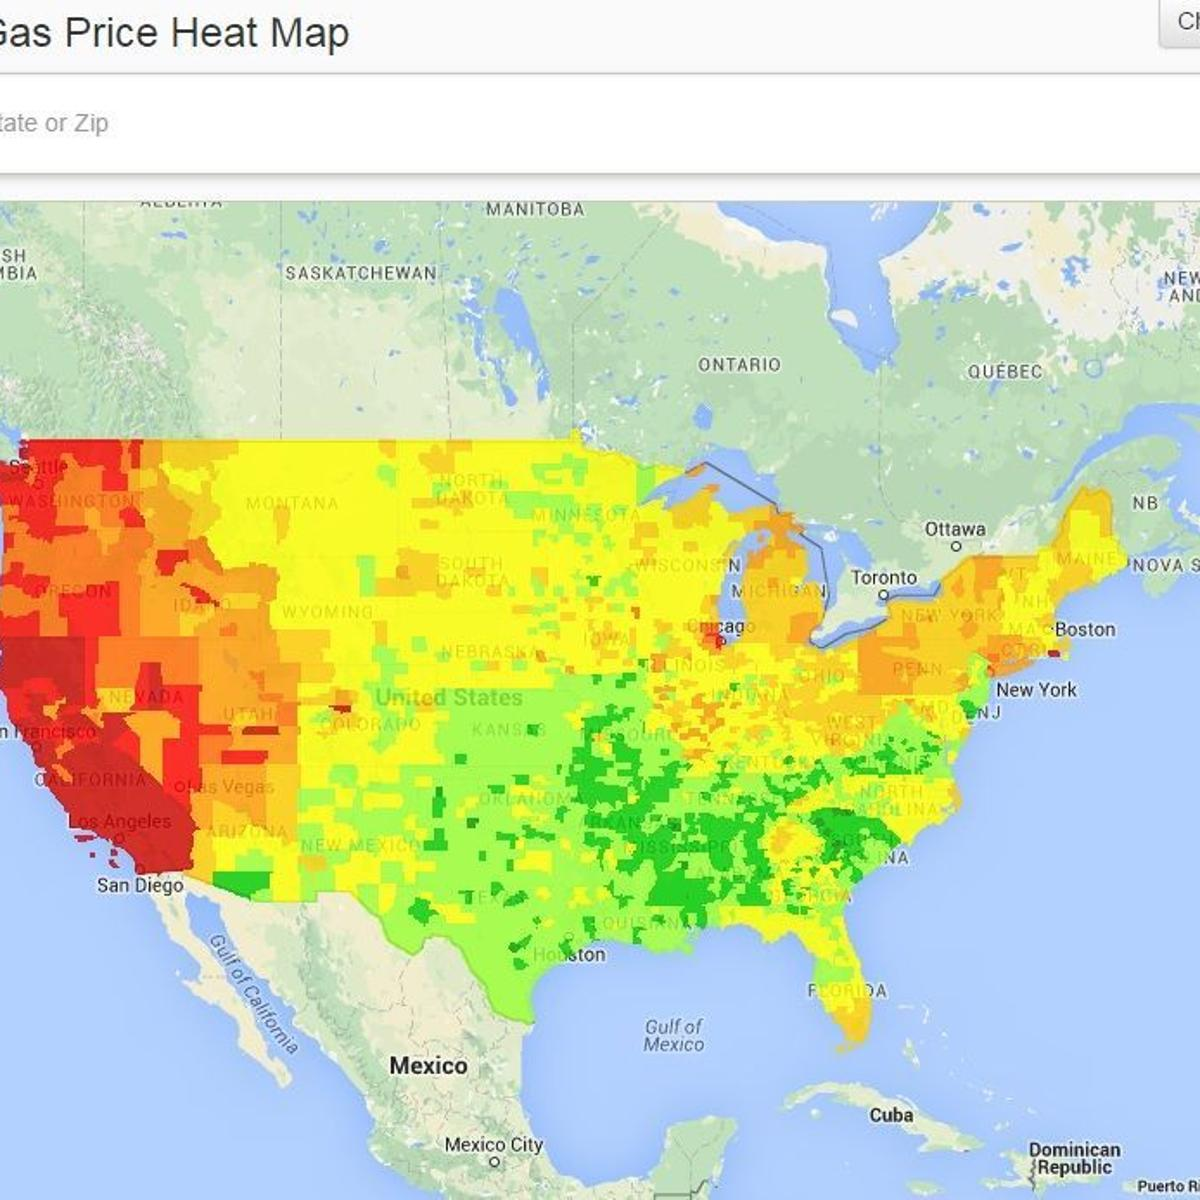 Gas prices climbing in Montana, but still cheaper than last ... on gun control map, gasoline price map, jobs map, gas price increase reasons, world news map, diesel prices map, google map, crime map, travel map, gas price change, china map, maps map, california map, gas tank parts, rent prices map, cheapest gas map, birthrate map, gas production map, gas distribution map, gas price forecast,